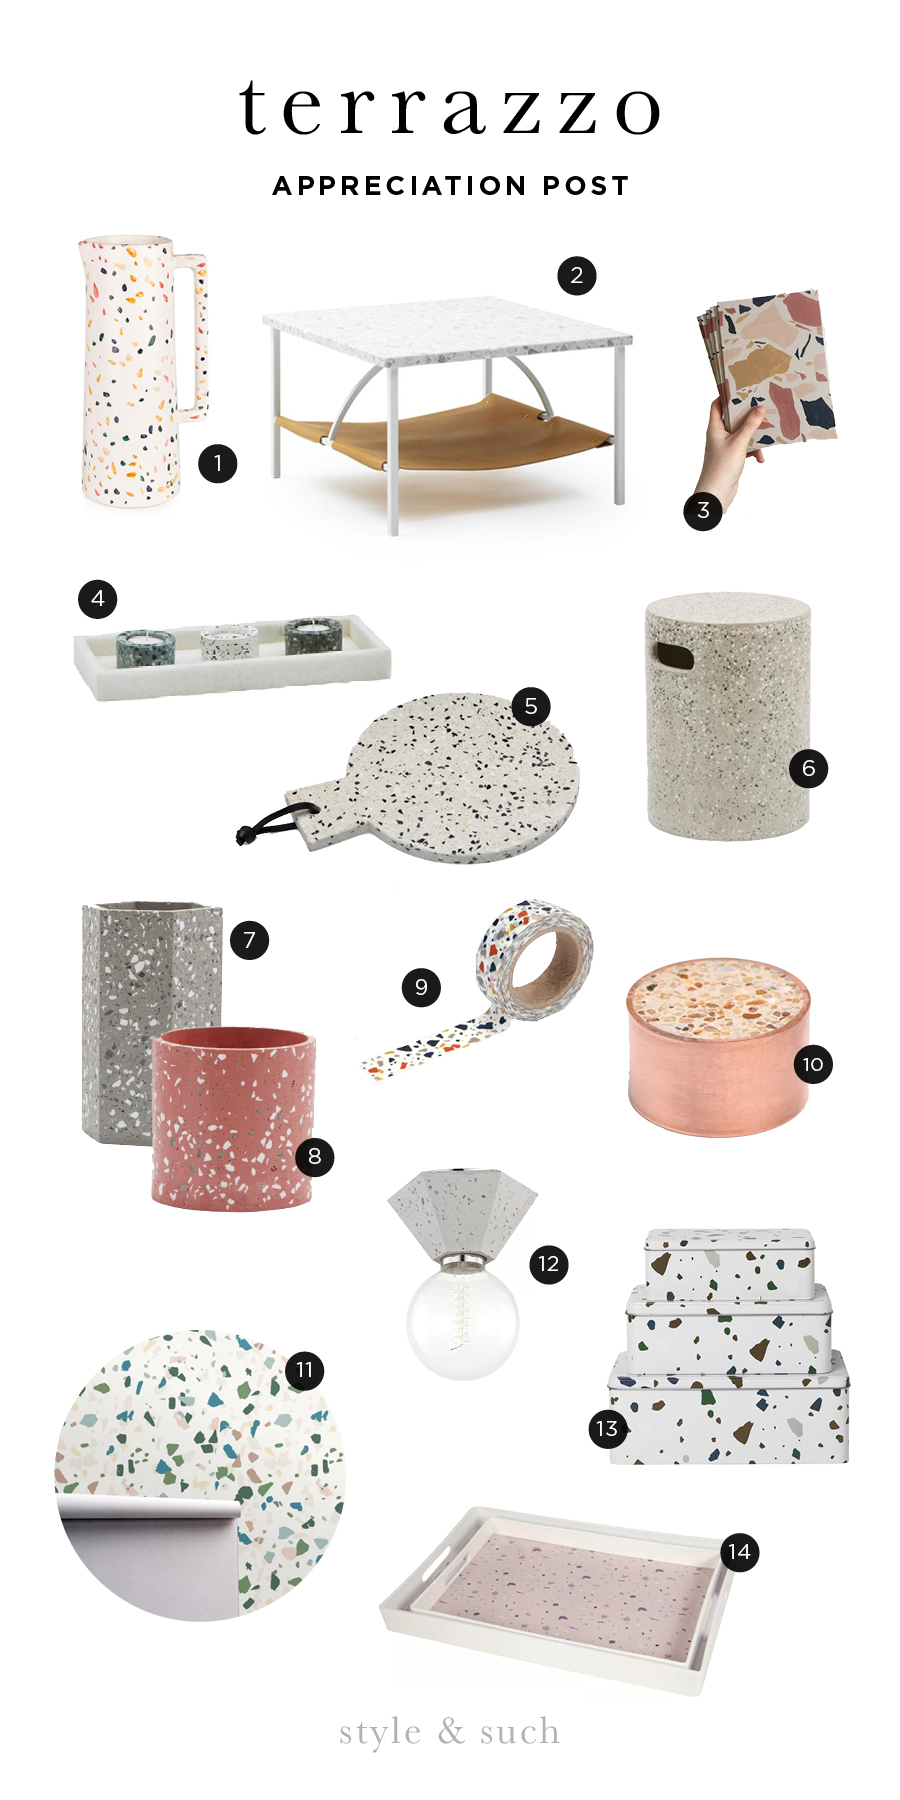 1. Pitcher  |  2. Coffee Table  |  3. Notebooks  |  4. Candle Set  |  5. Board  |  6. Pedastel Stool  |  7. Tall Geometric Pot  |  8. Small Pot  |  9. Washi Tape  |  10. Paperweight  |  11. Wallpaper  |  12. Flush Mount Light  |  13. Metal Storage Boxes  |  14. Serving Tray Set